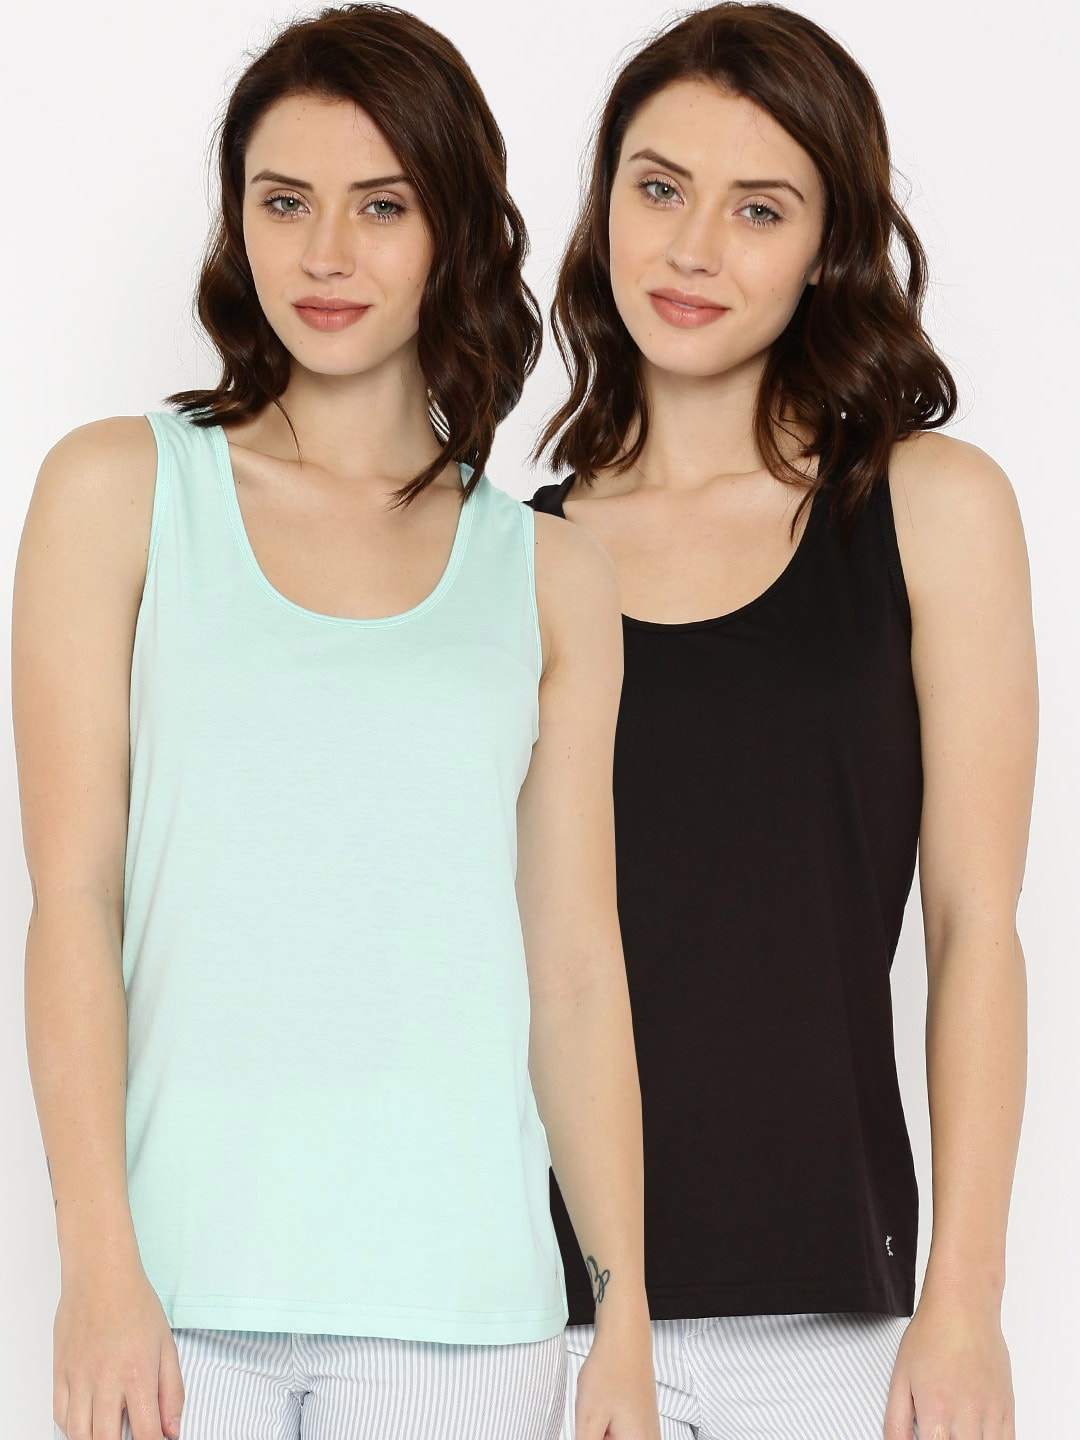 Kanvin Pack of 2 Lounge Tops KAW16283C image